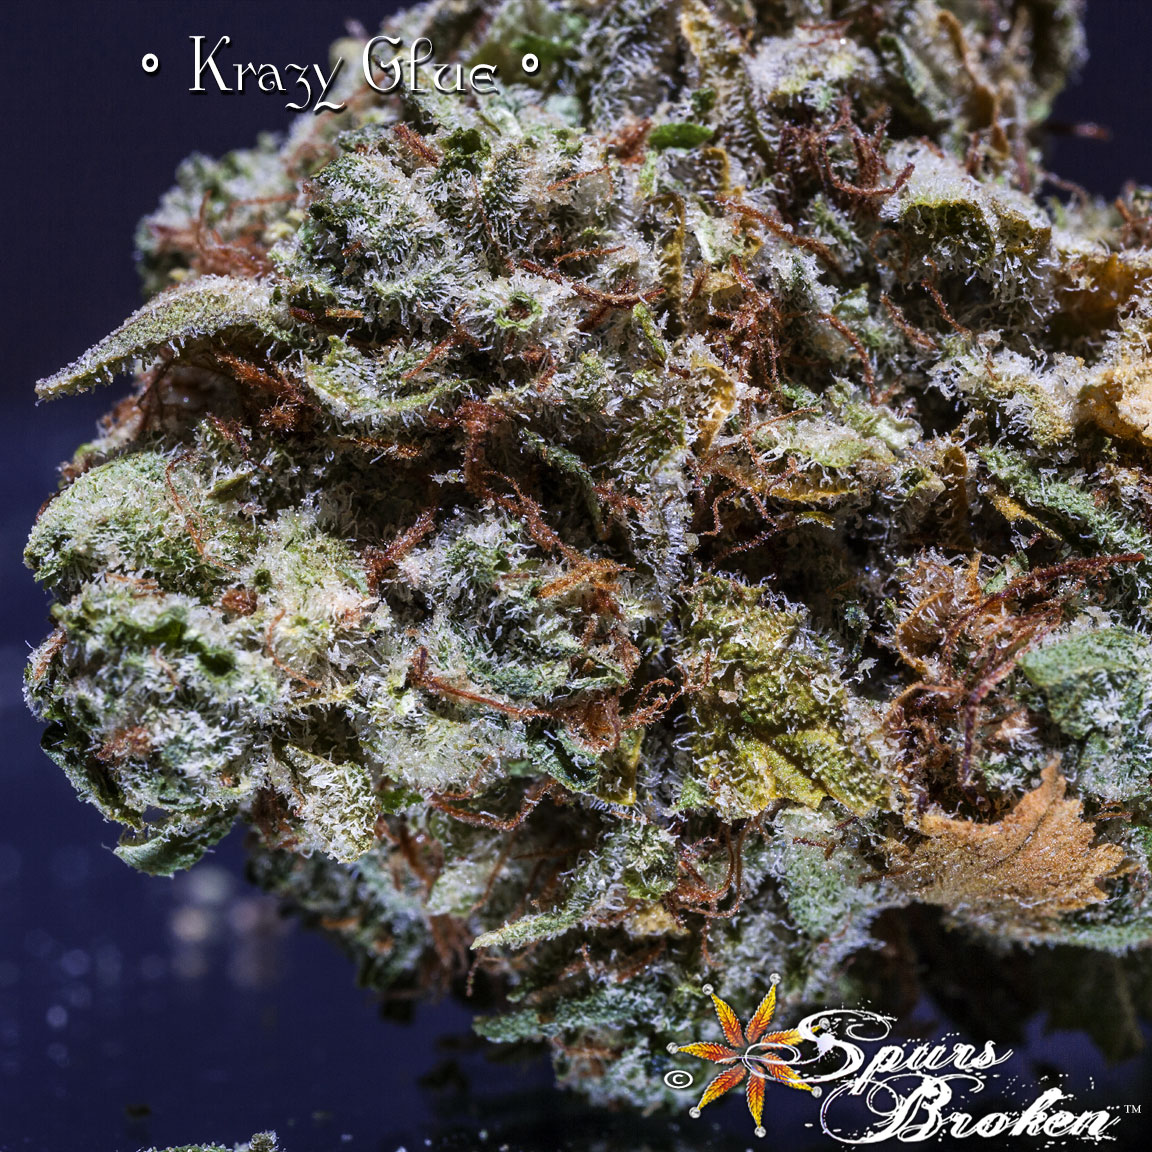 Krazy Glue - Cannabis Macro Photography by Spurs Broken (Robert R. Sanders)